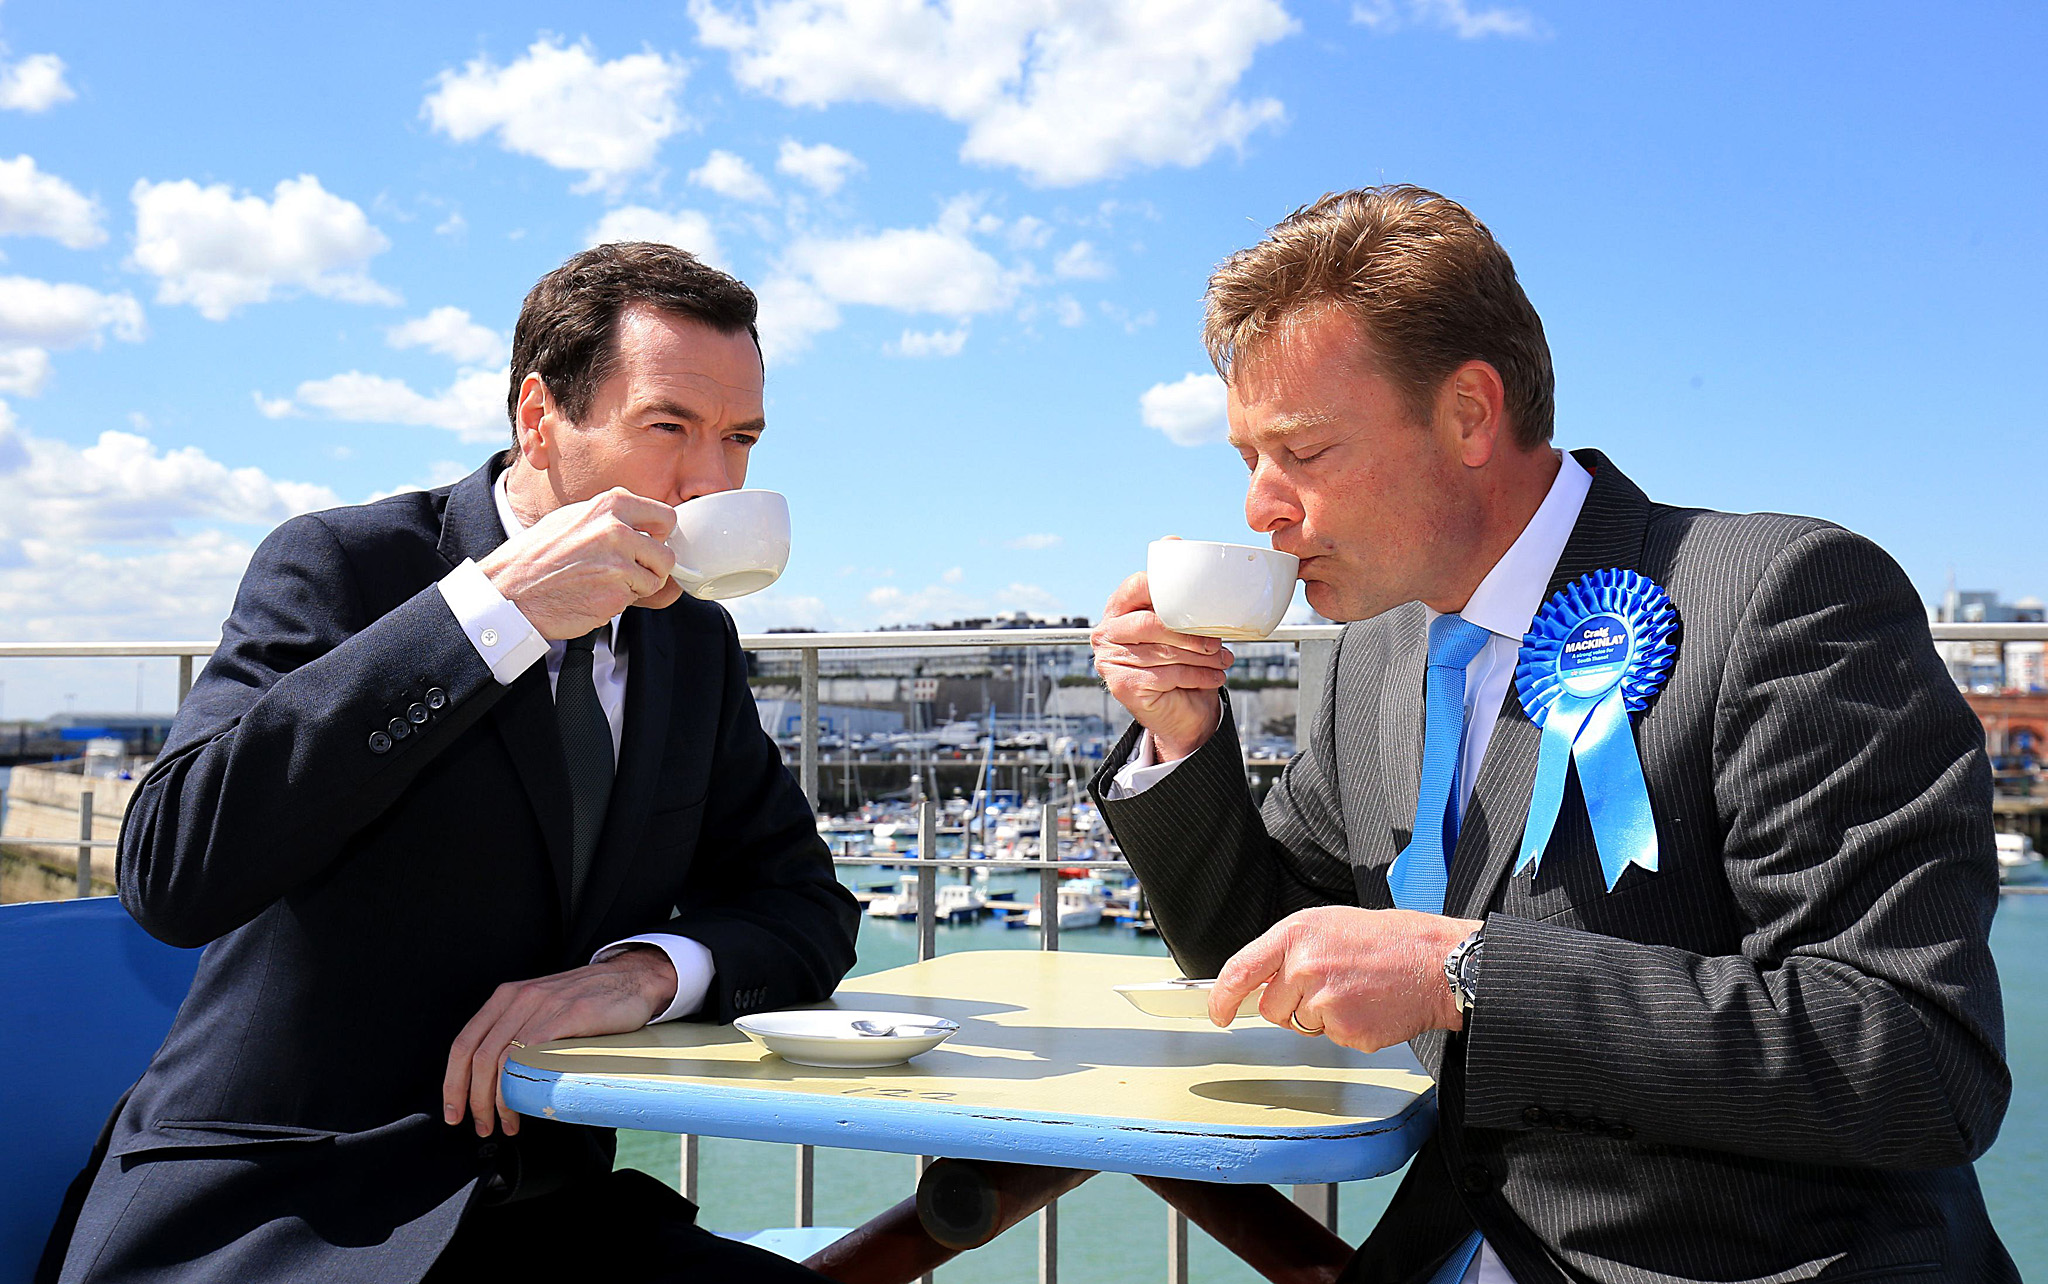 General Election 2015 campaign - April 28th...Chancellor George Osborne talks to Craig Mackinlay, Conservative parliamentary candidate for South Thanet during a General Election campaign visit to Ramsgate in Kent. PRESS ASSOCIATION Photo. Picture date: Wednesday April 28, 2015. Photo credit should read: Gareth Fuller/PA Wire